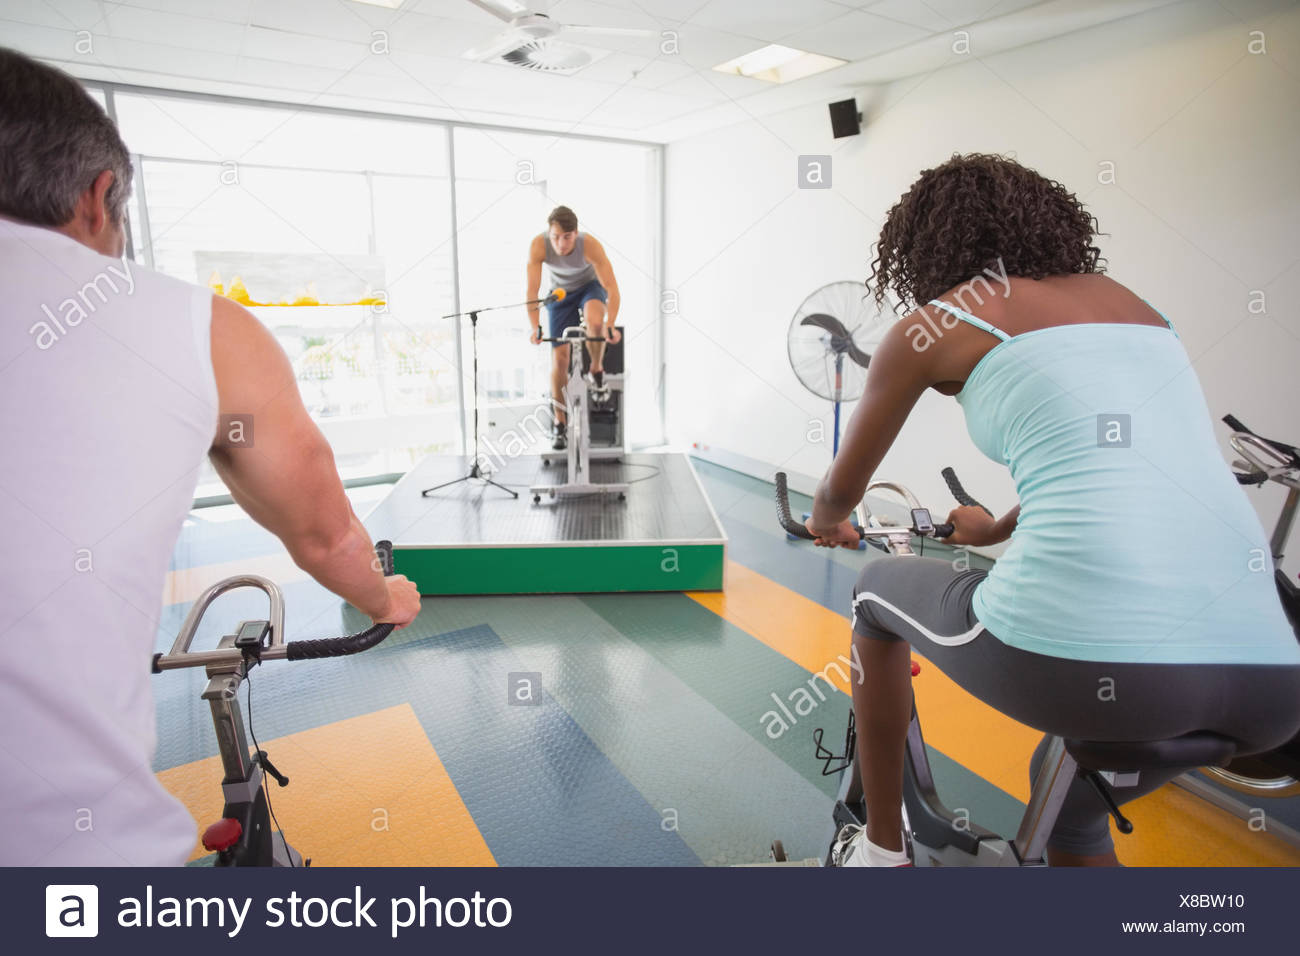 Spin class working out with motivational instructor Stock Photo